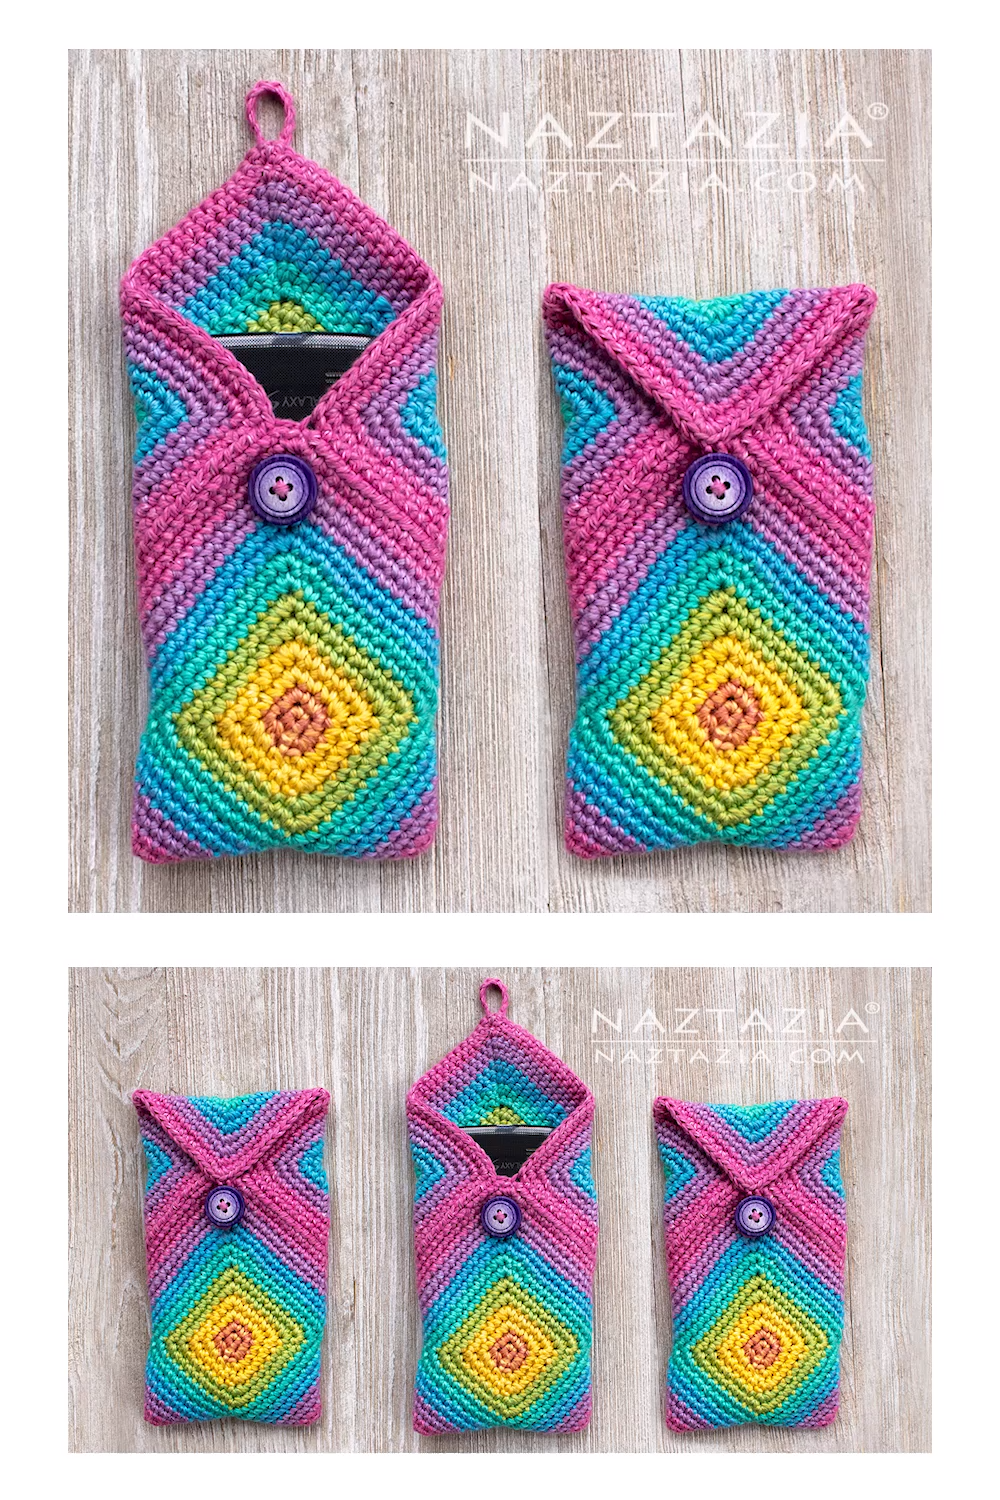 How to Crochet the Chromatic Phone Case